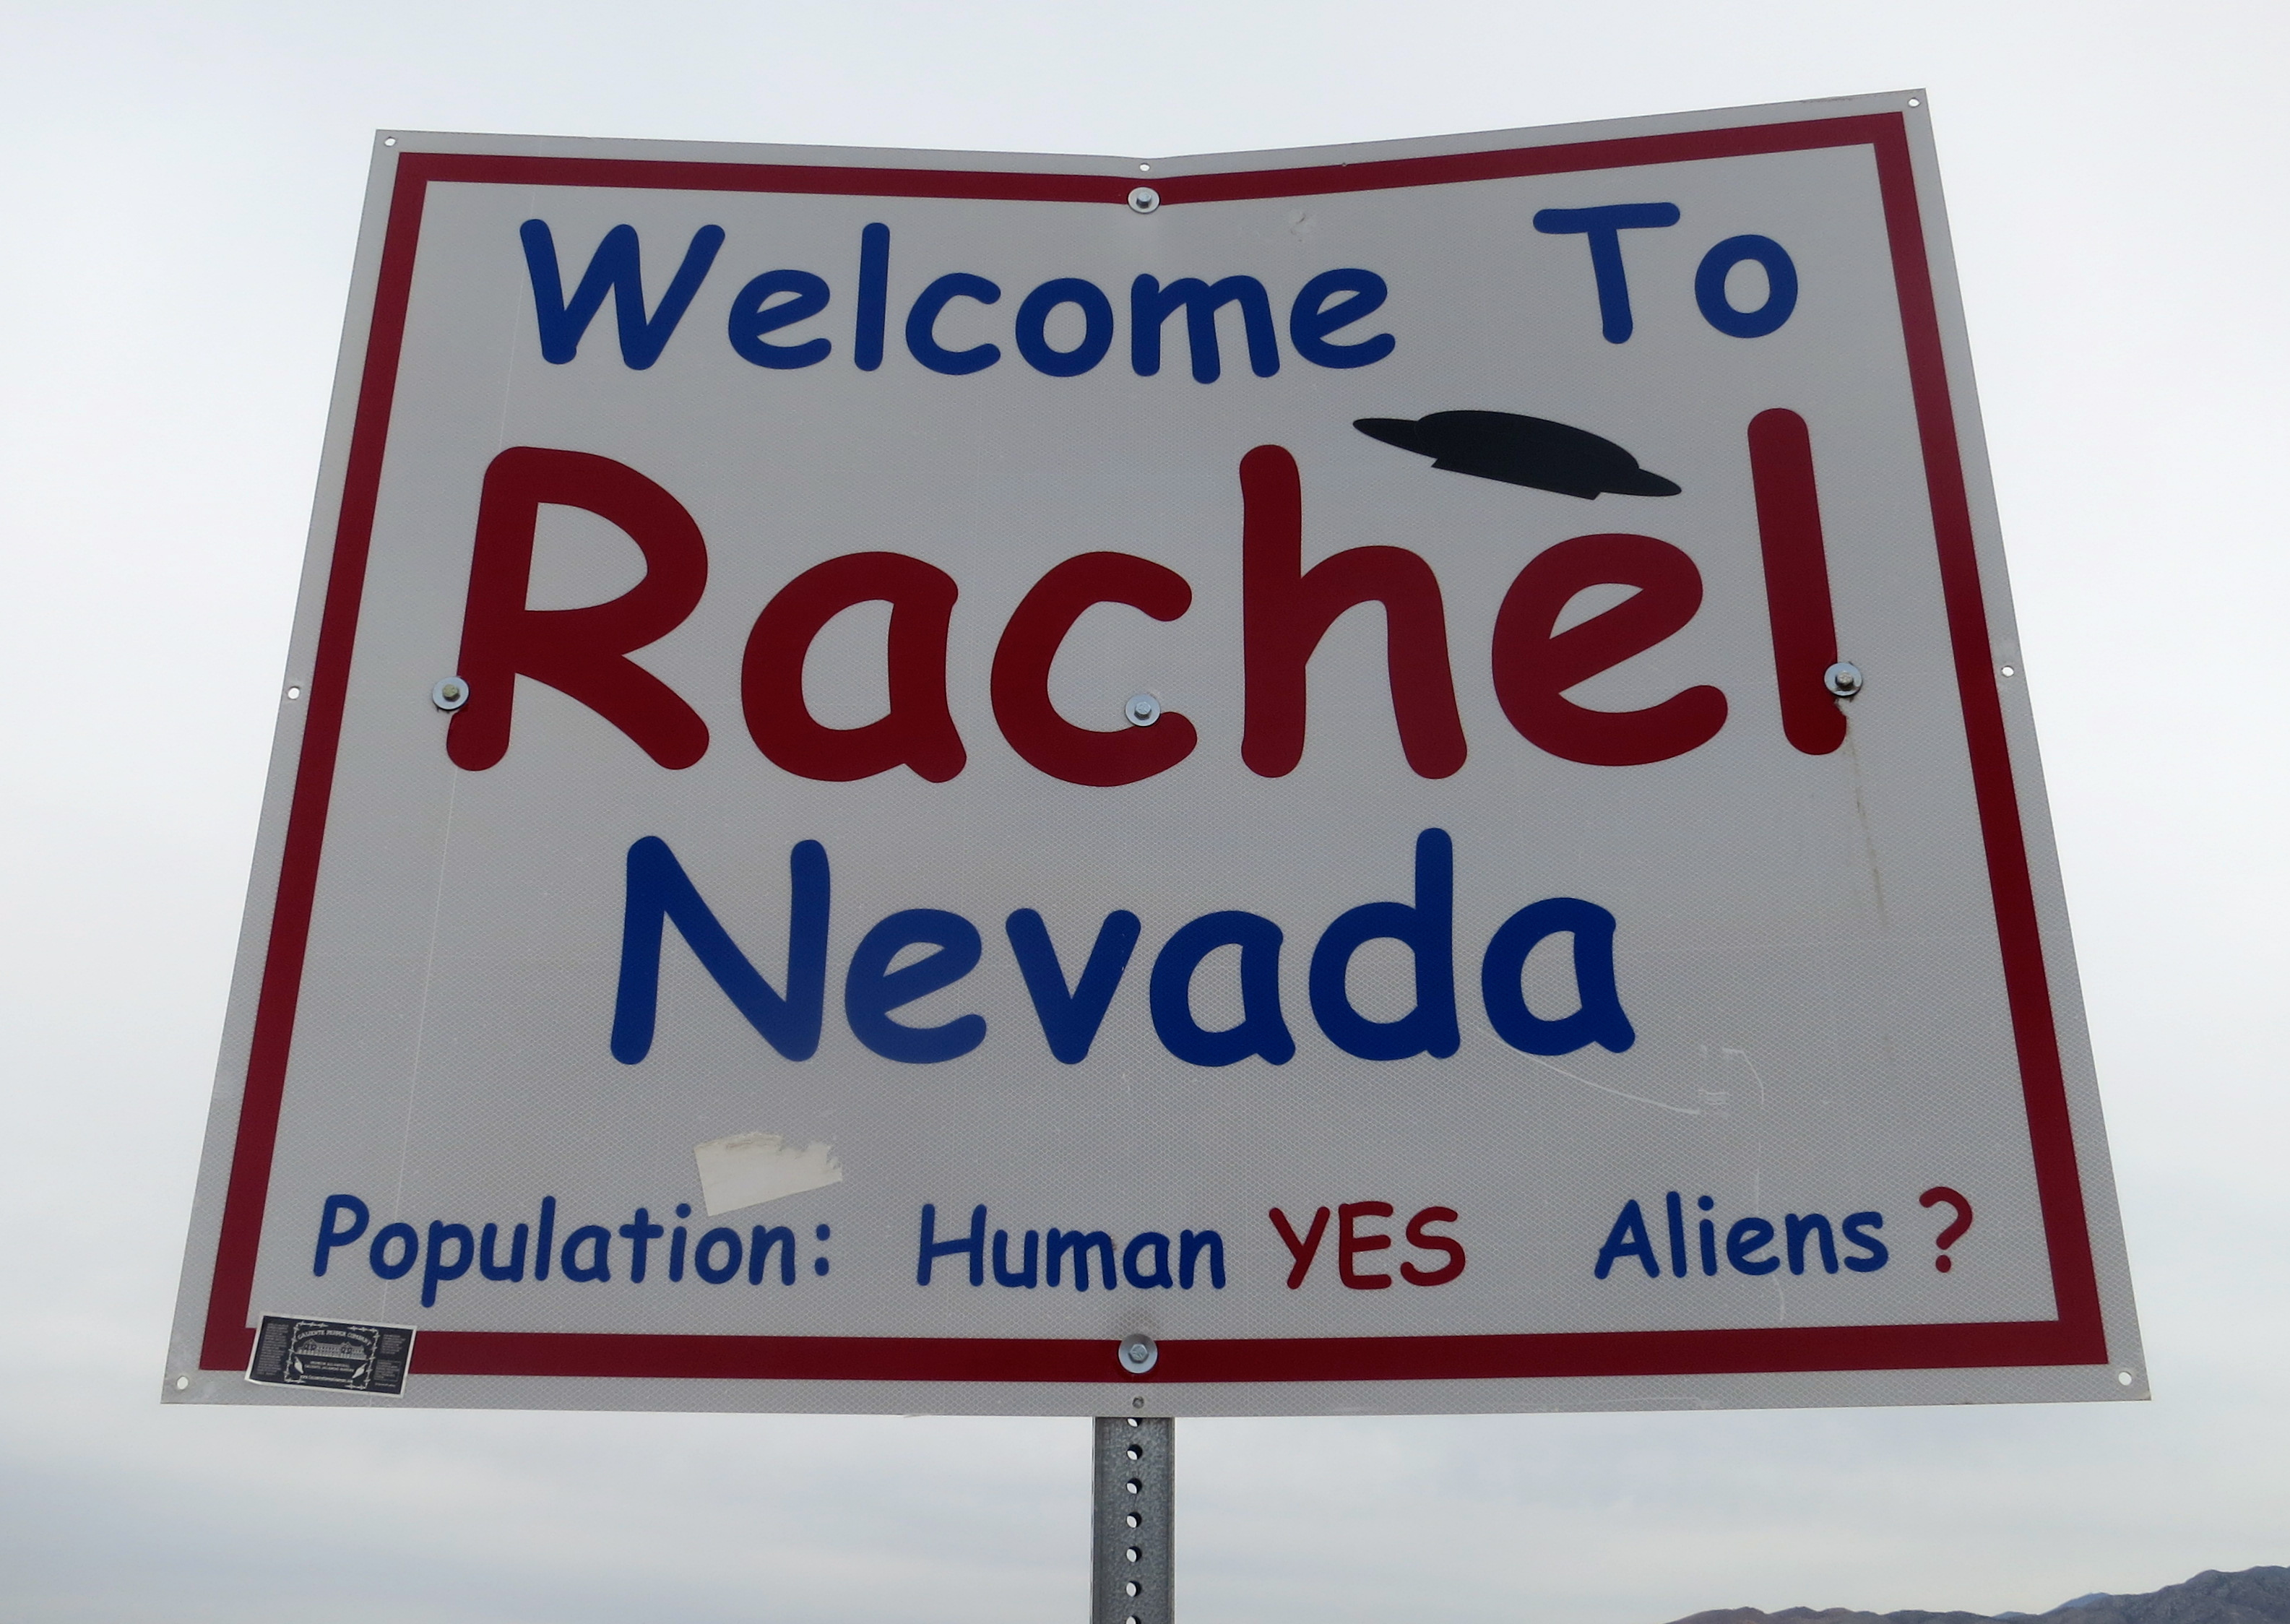 The welcome sign to Rachel, Nevada.